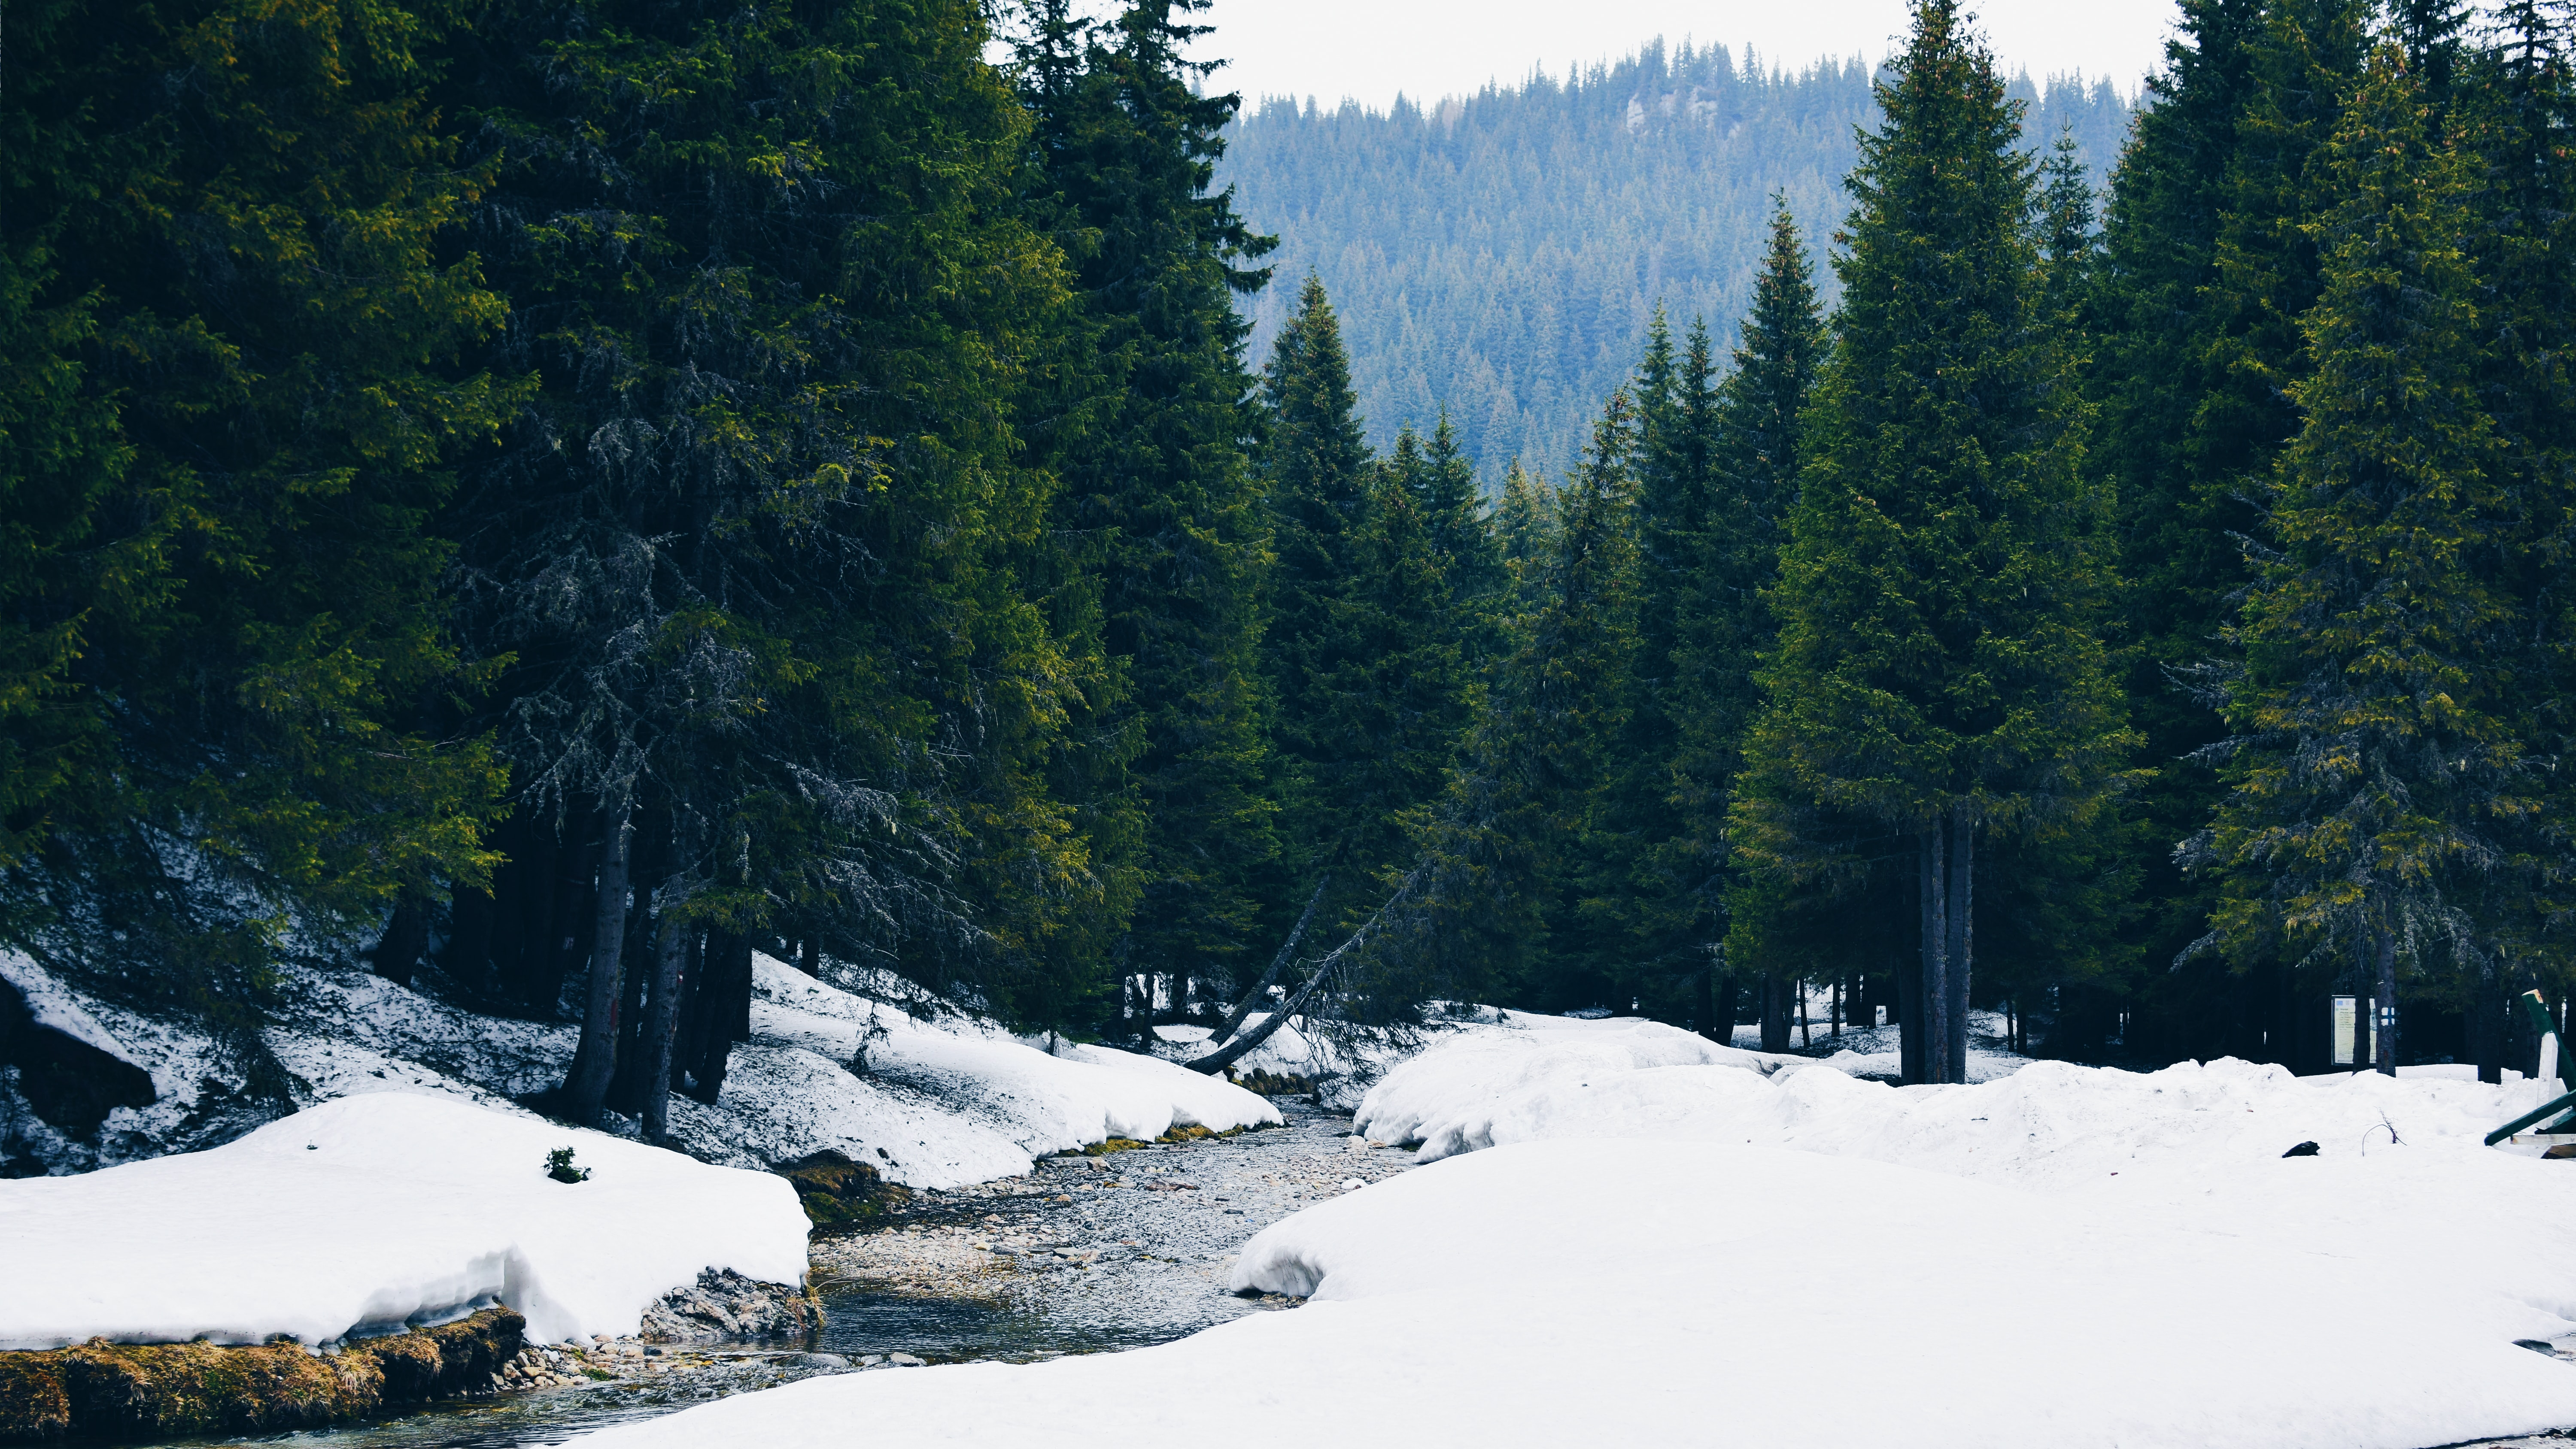 snowy landscape of a forest